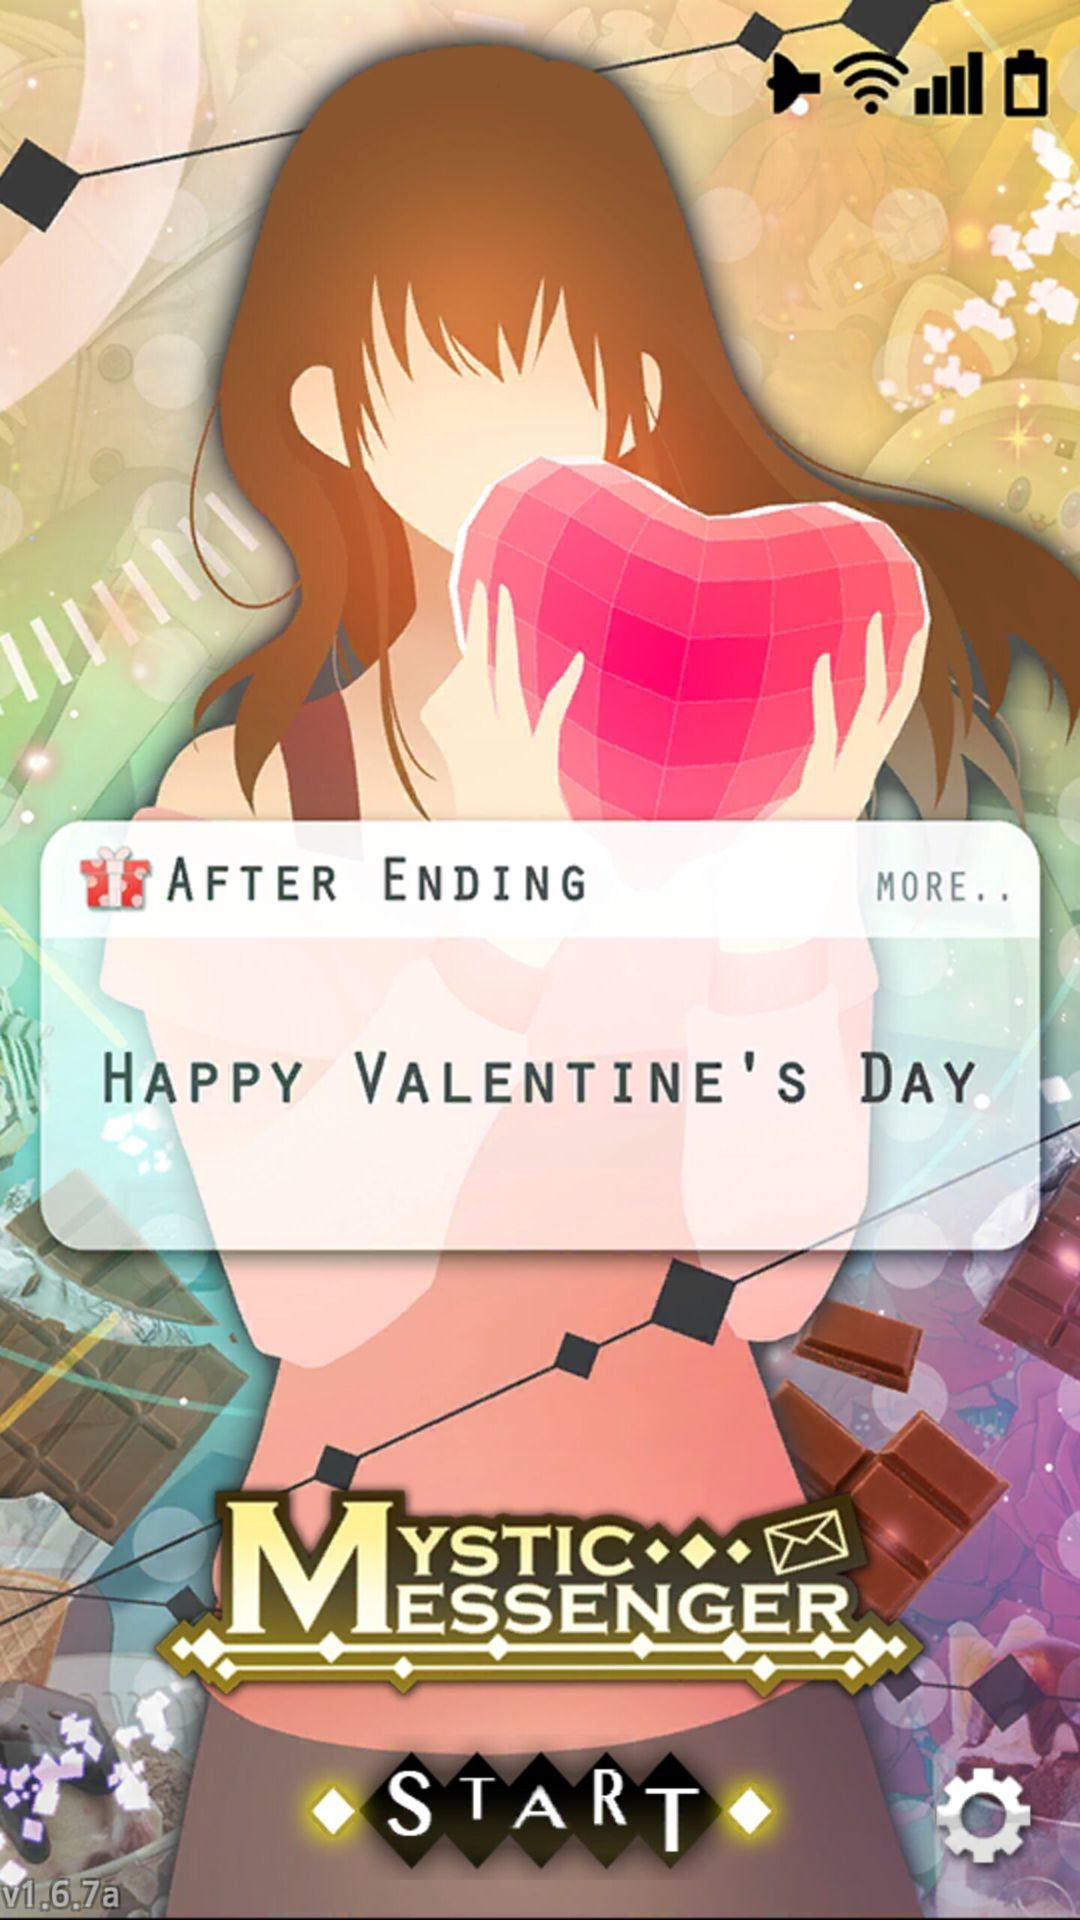 Cheritz came out with a Valentine's Day update